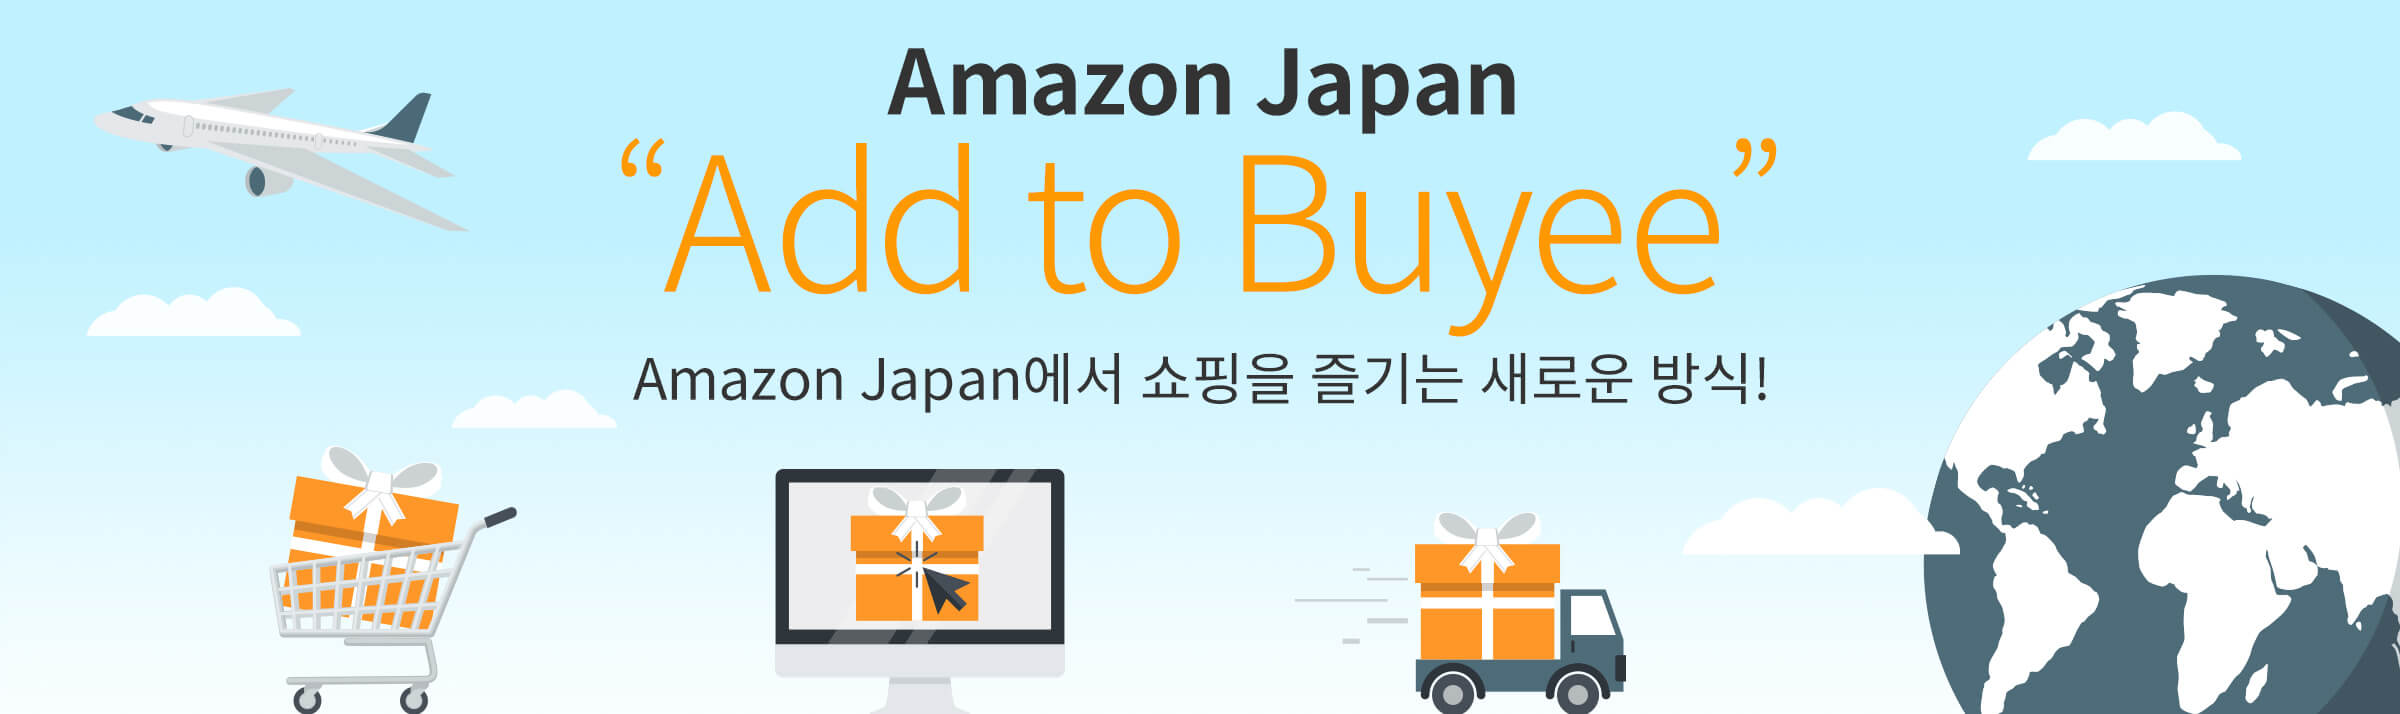 A brand new way to enjoy the shopping at Amazon Japan